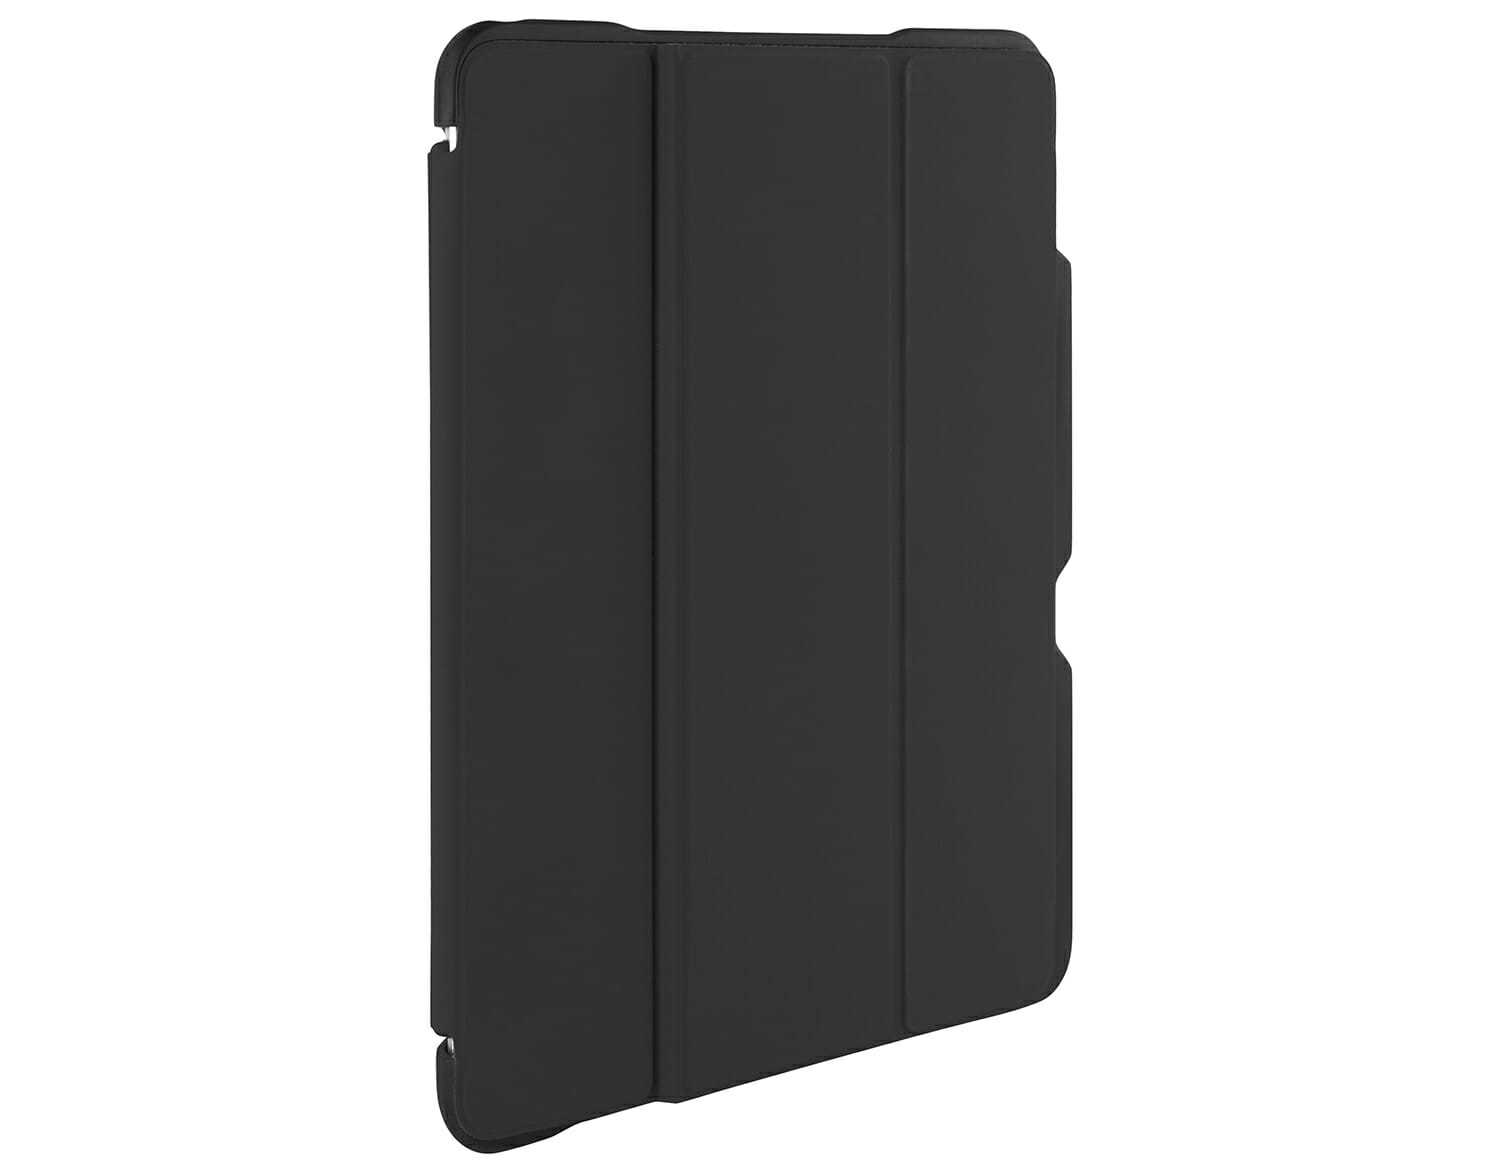 stm-2017-dux-shell-ipad-pro-10-black-front-angle-cover-r_1.jpg